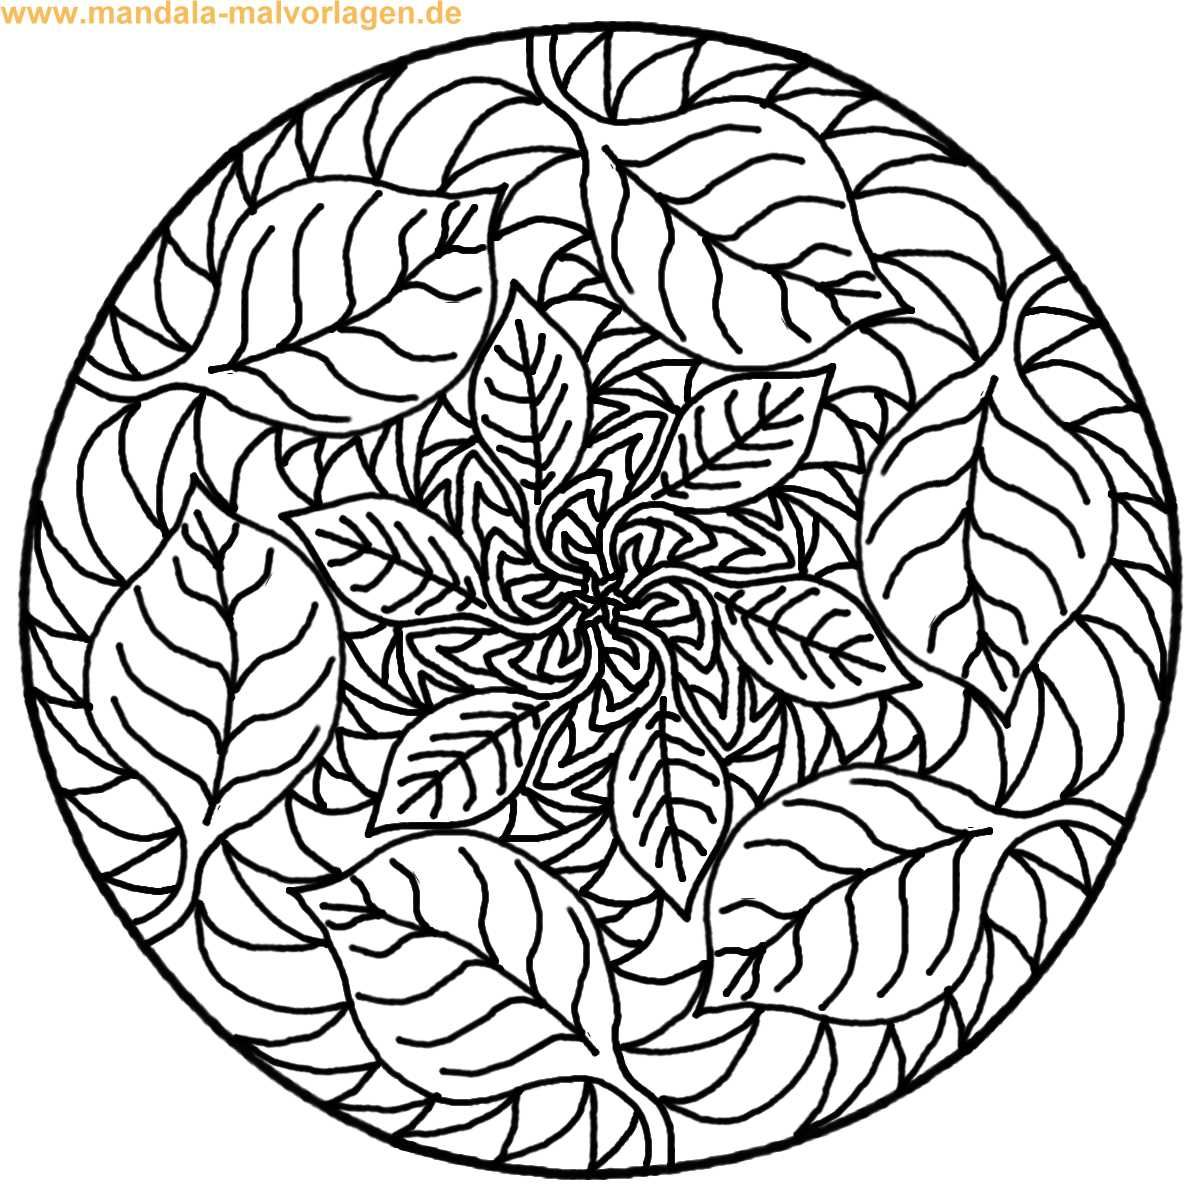 Mandala zum ausmalen | tree and leaves coloring | Pinterest ...